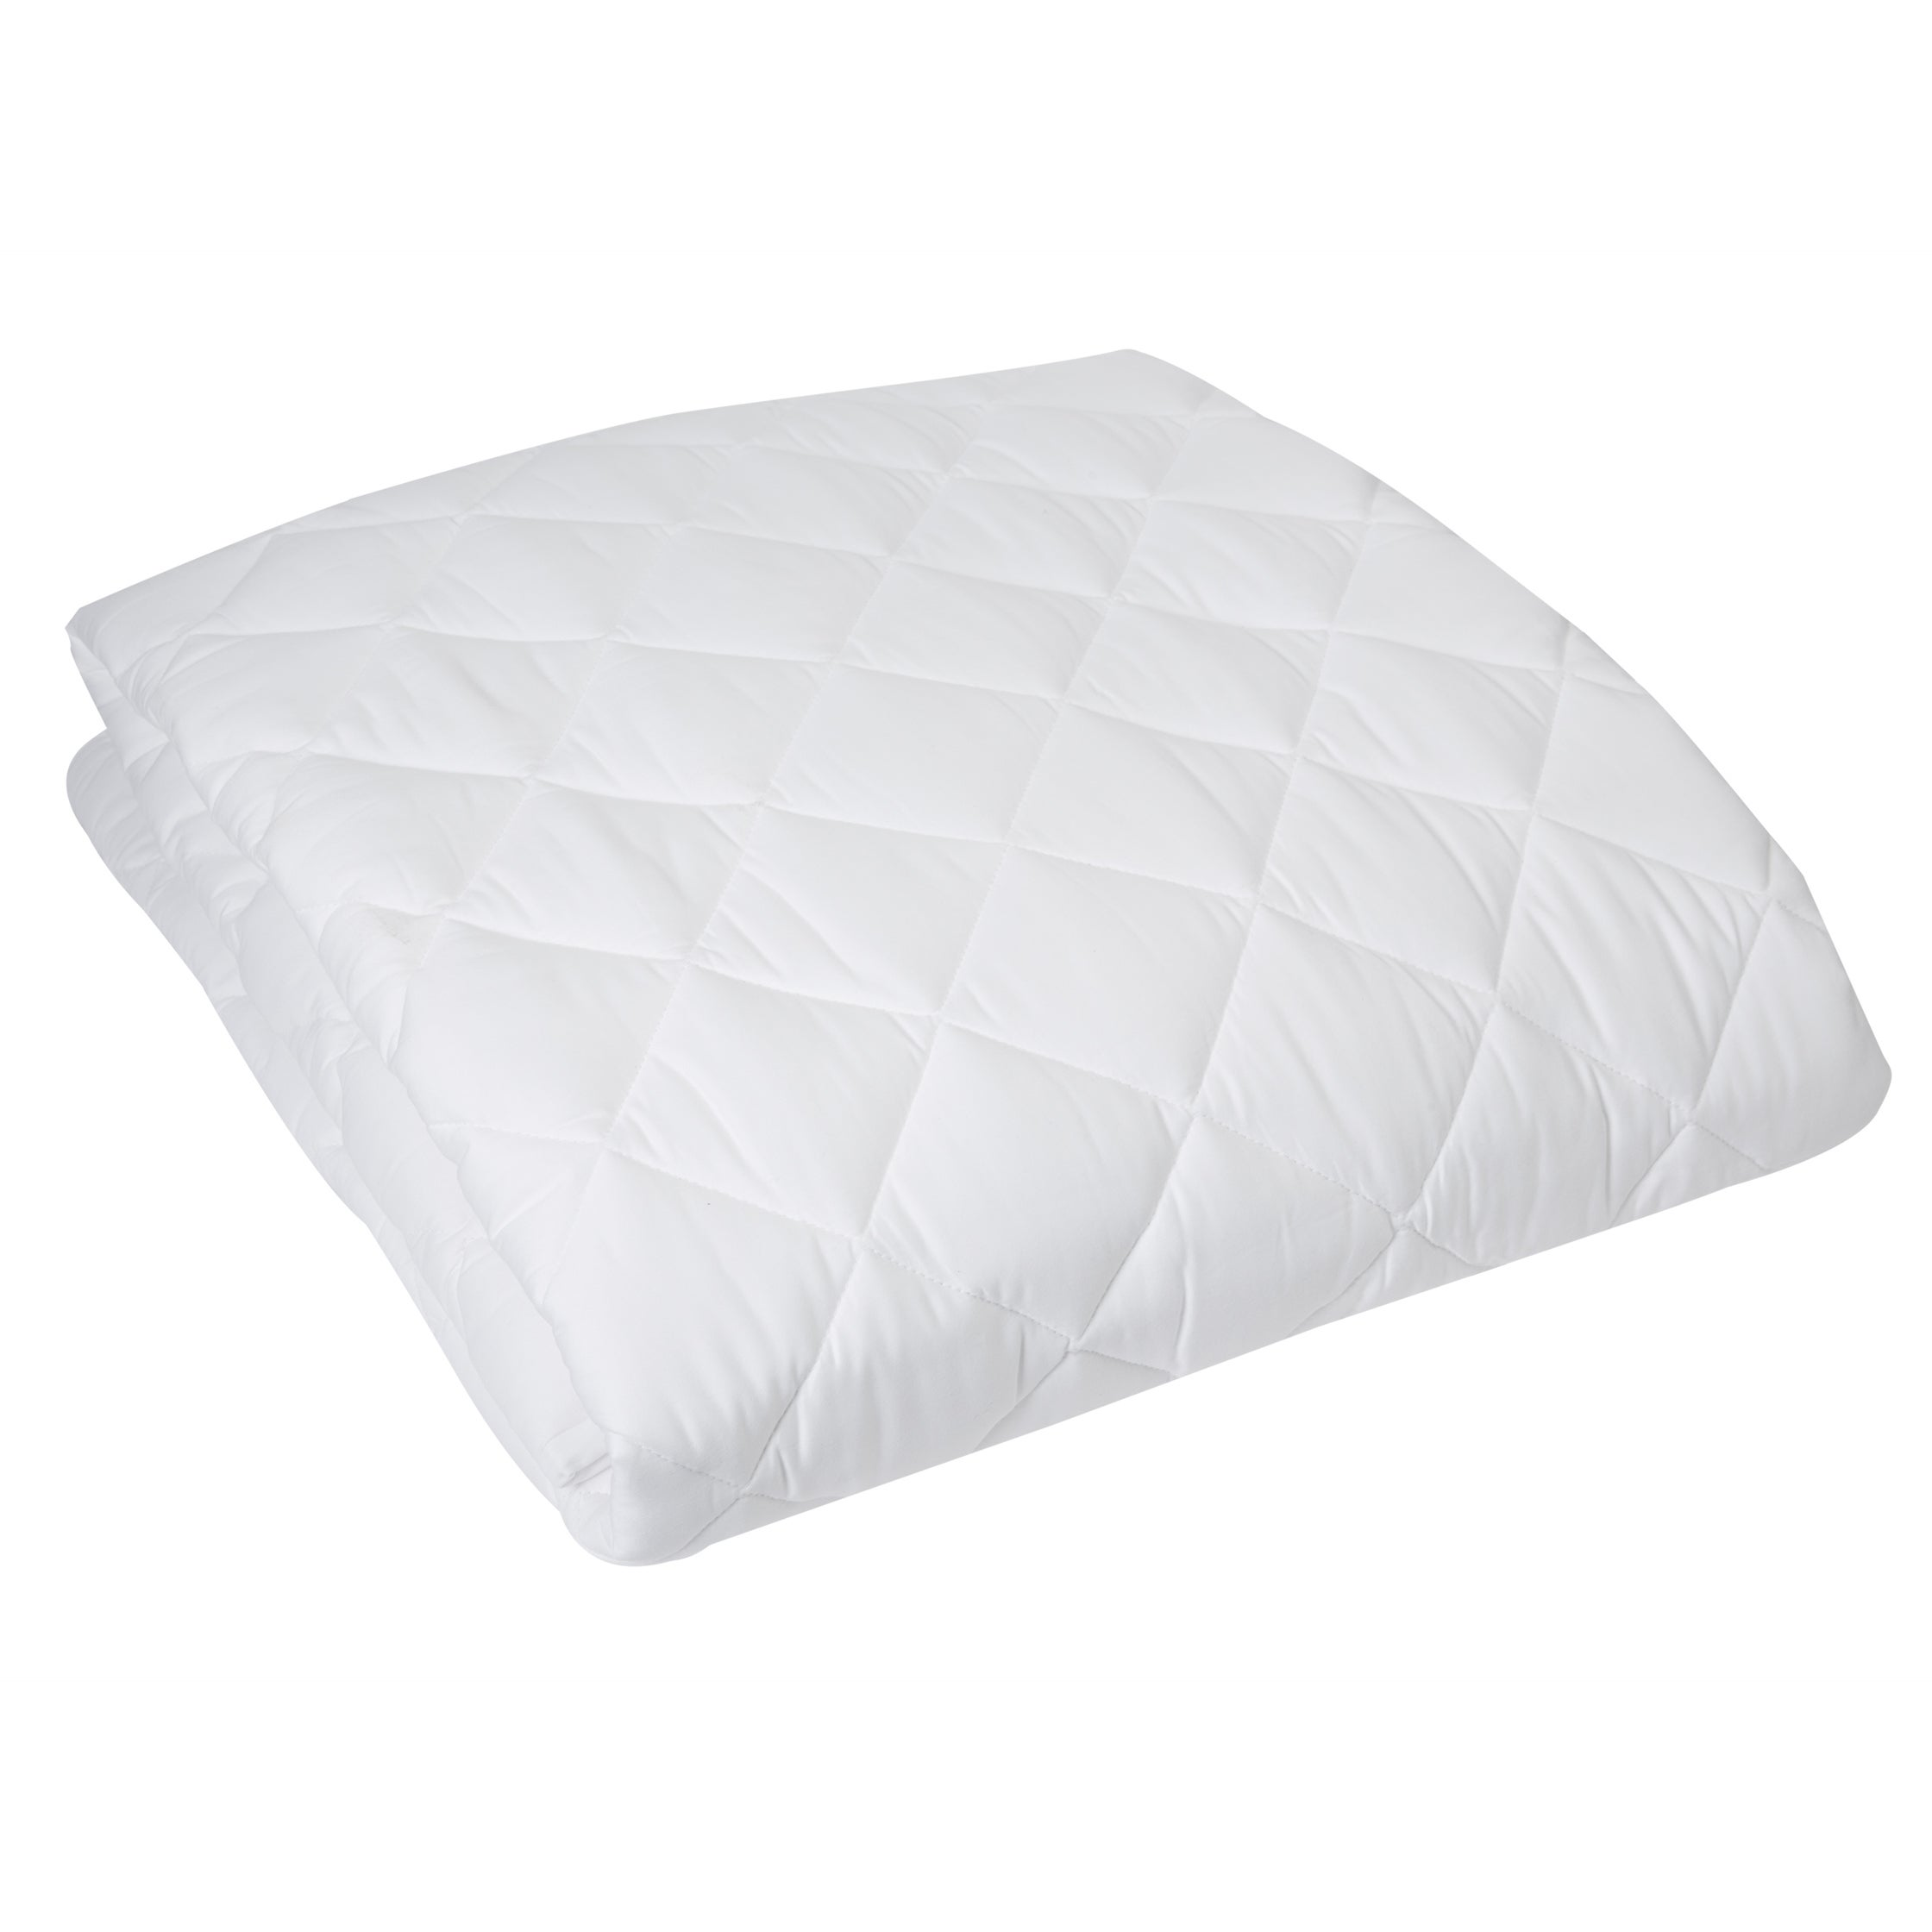 allerease cotton pdx bath reviews mattress bed pad wayfair